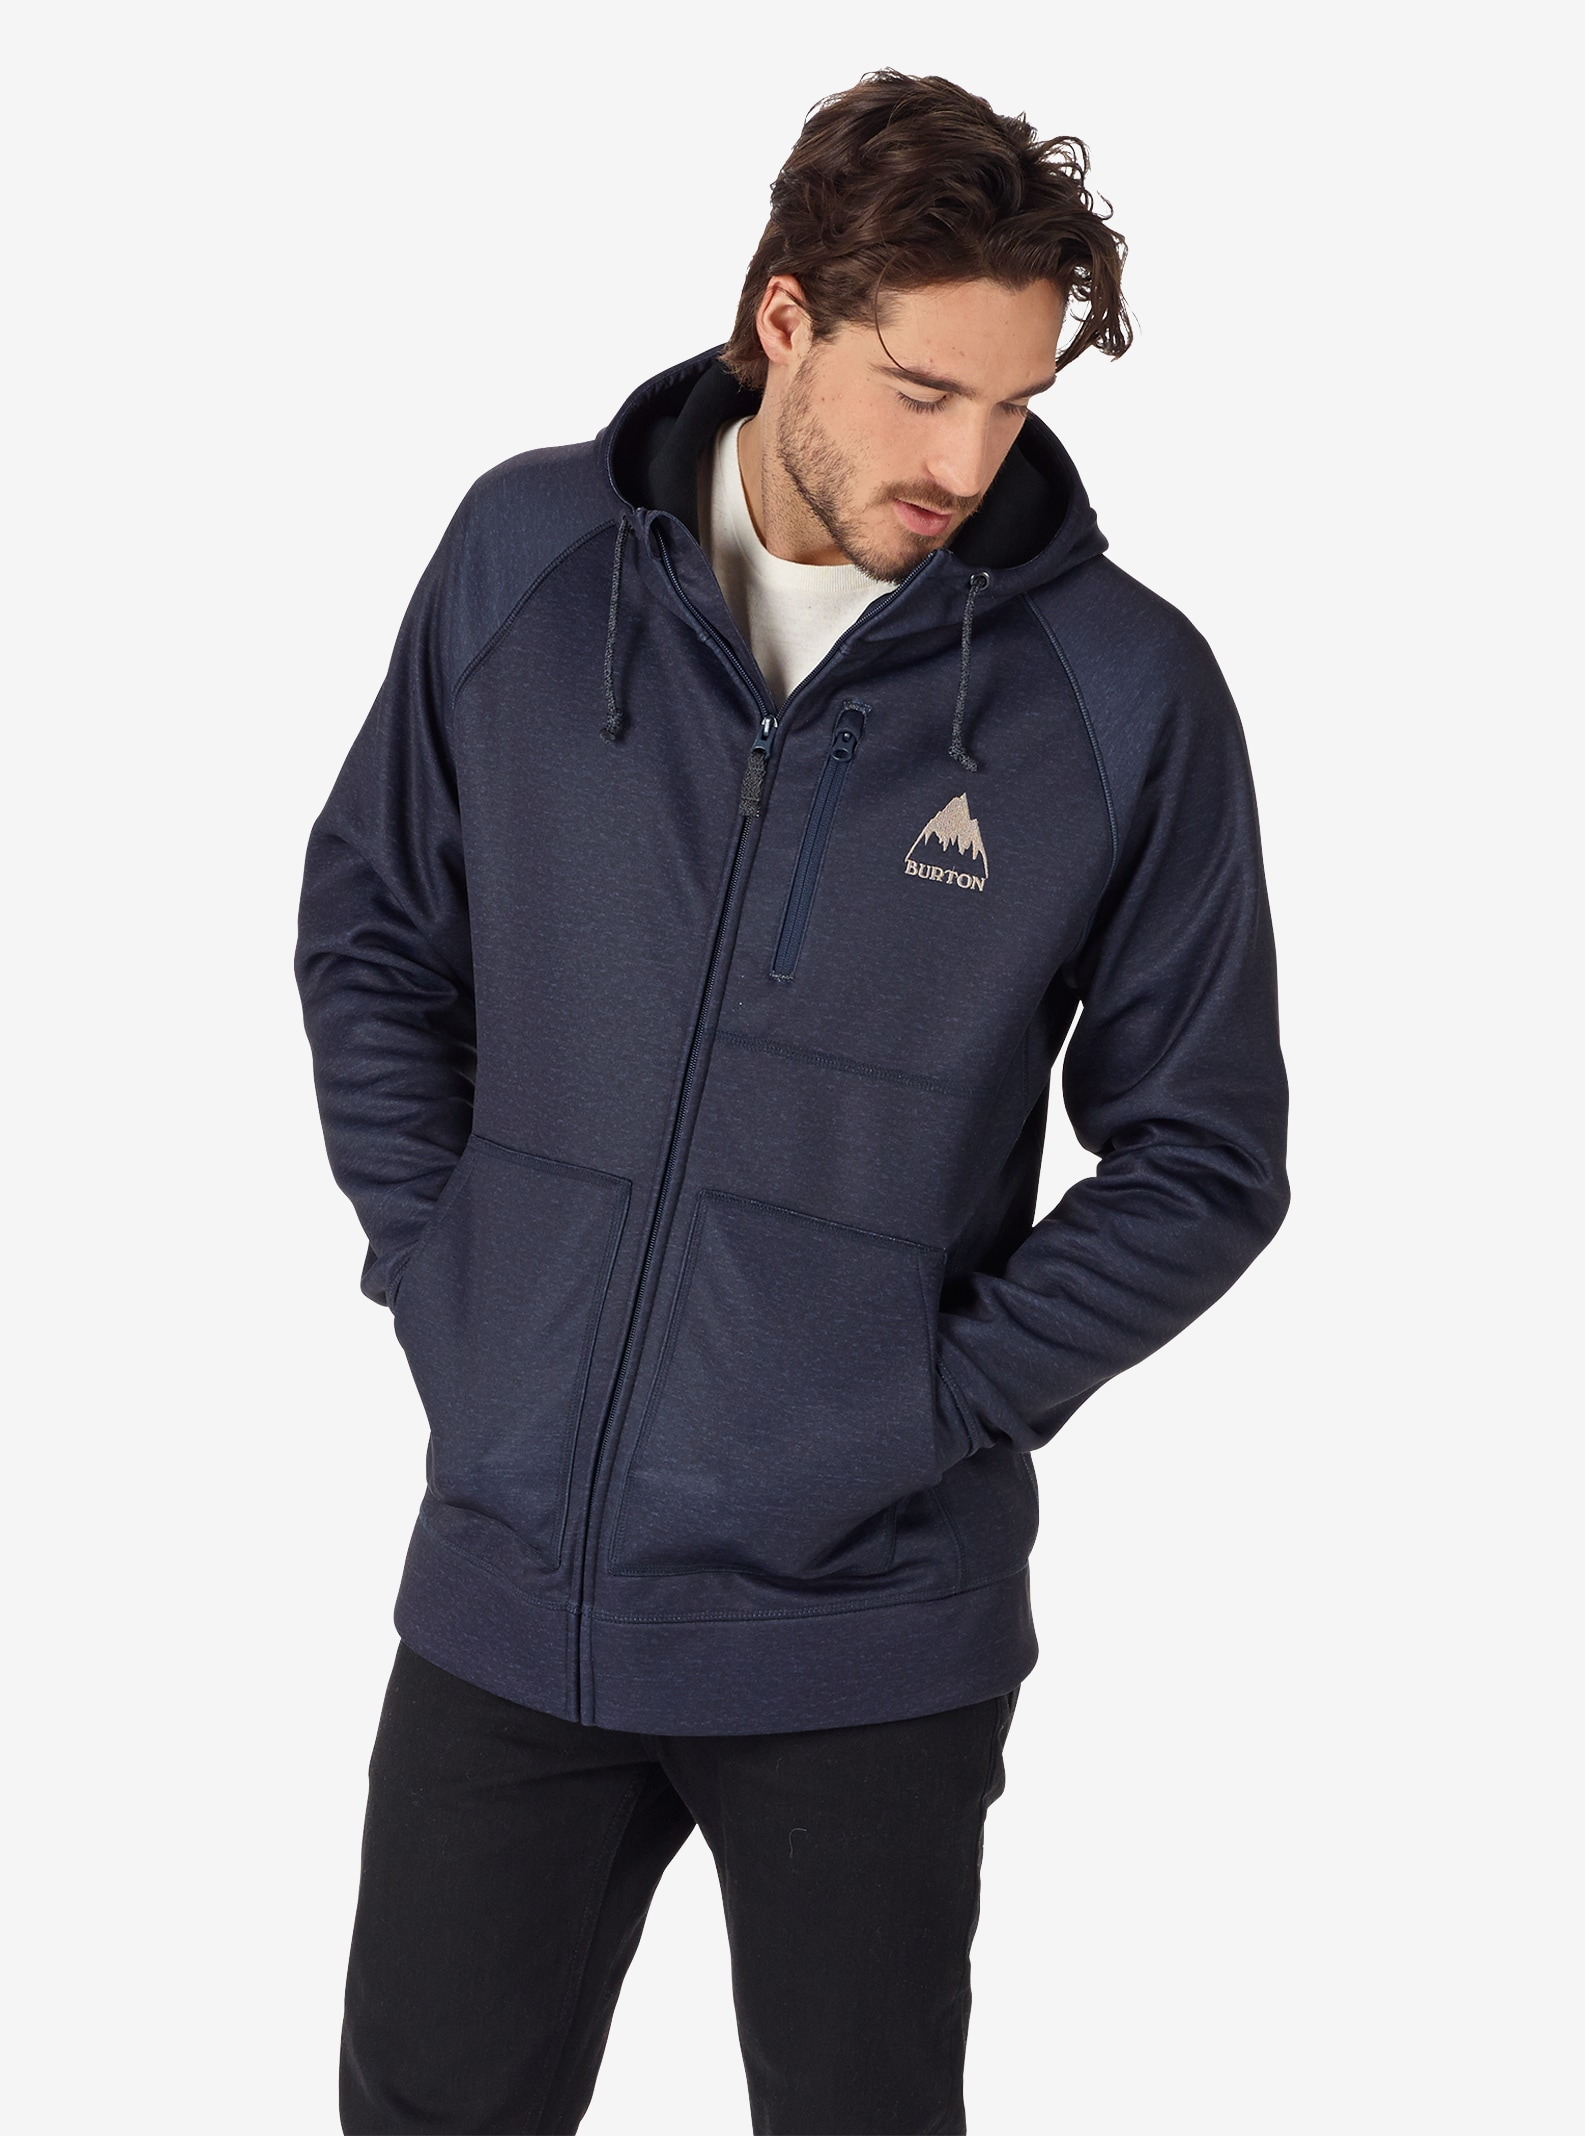 Men's Burton Bonded Full-Zip Hoodie shown in Mood Indigo Heather